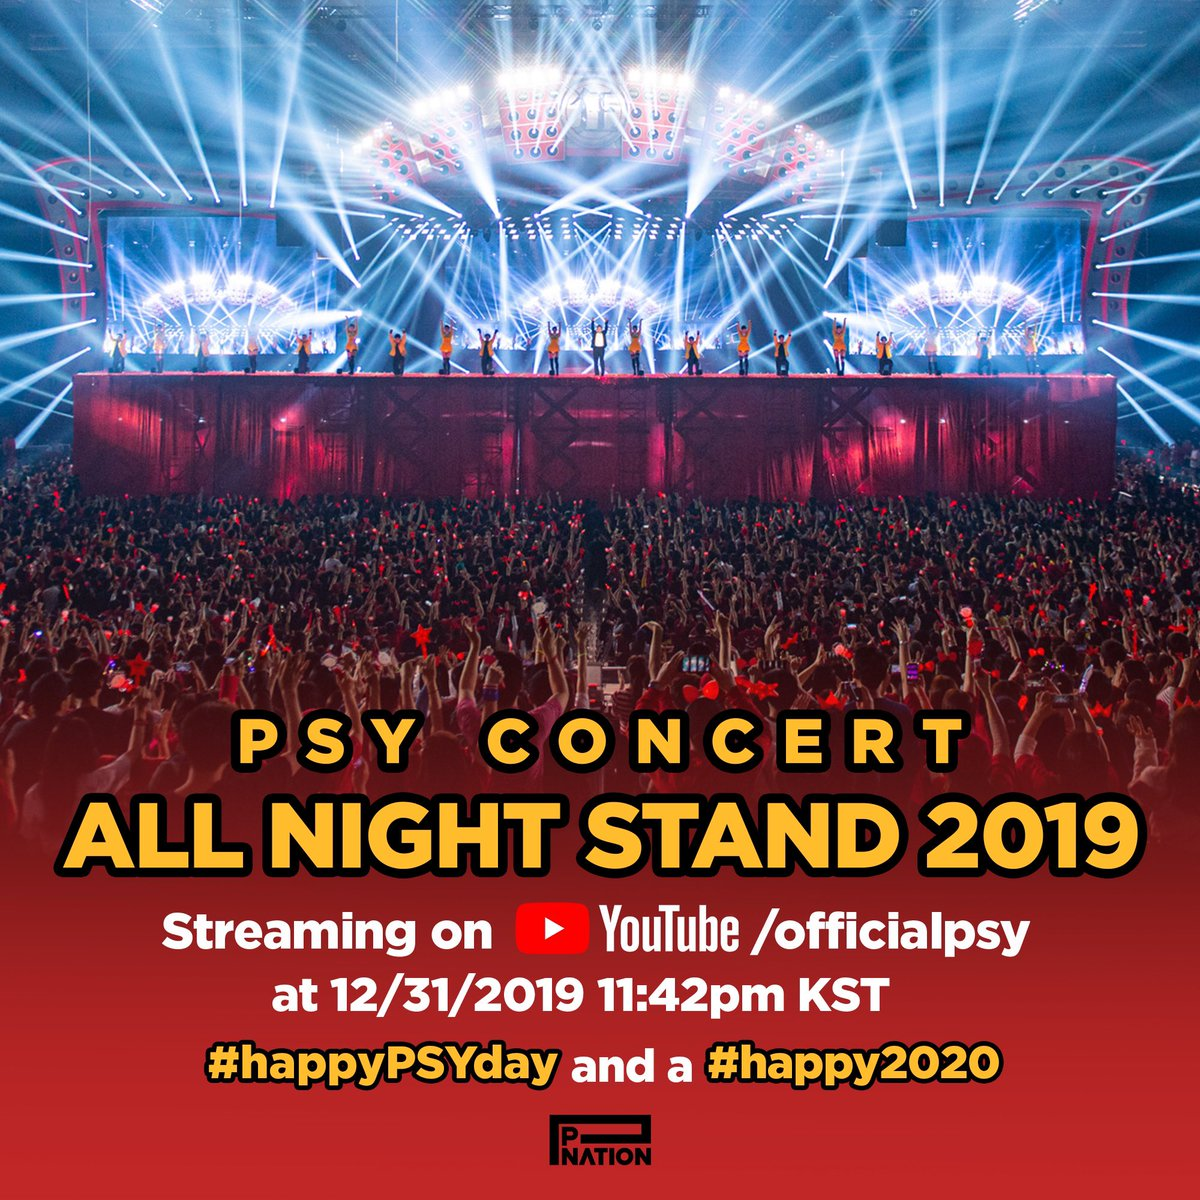 PSY CONCERT ALL NIGHT STAND 2019 Streaming on YOUTUBE/officialpsy at 12/31/2019 11:42pm KST #happyPSYday and a #happy2020 #12시부터생일축하받습니다🥳 #acceptingBDAYconratsfrom12am🥳